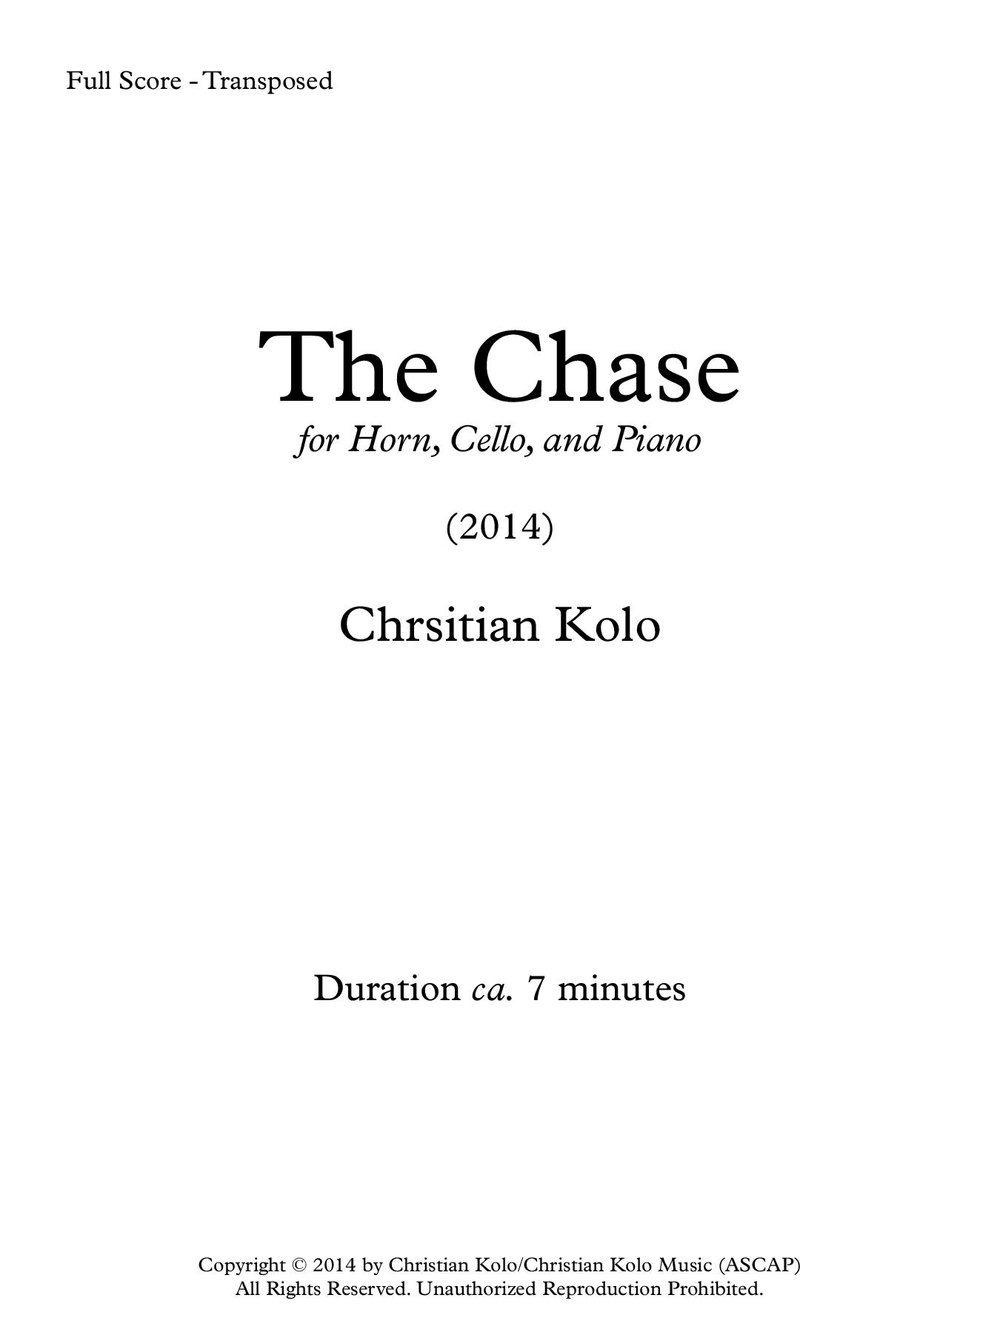 The Chase (Works Cover) - Trio.jpg